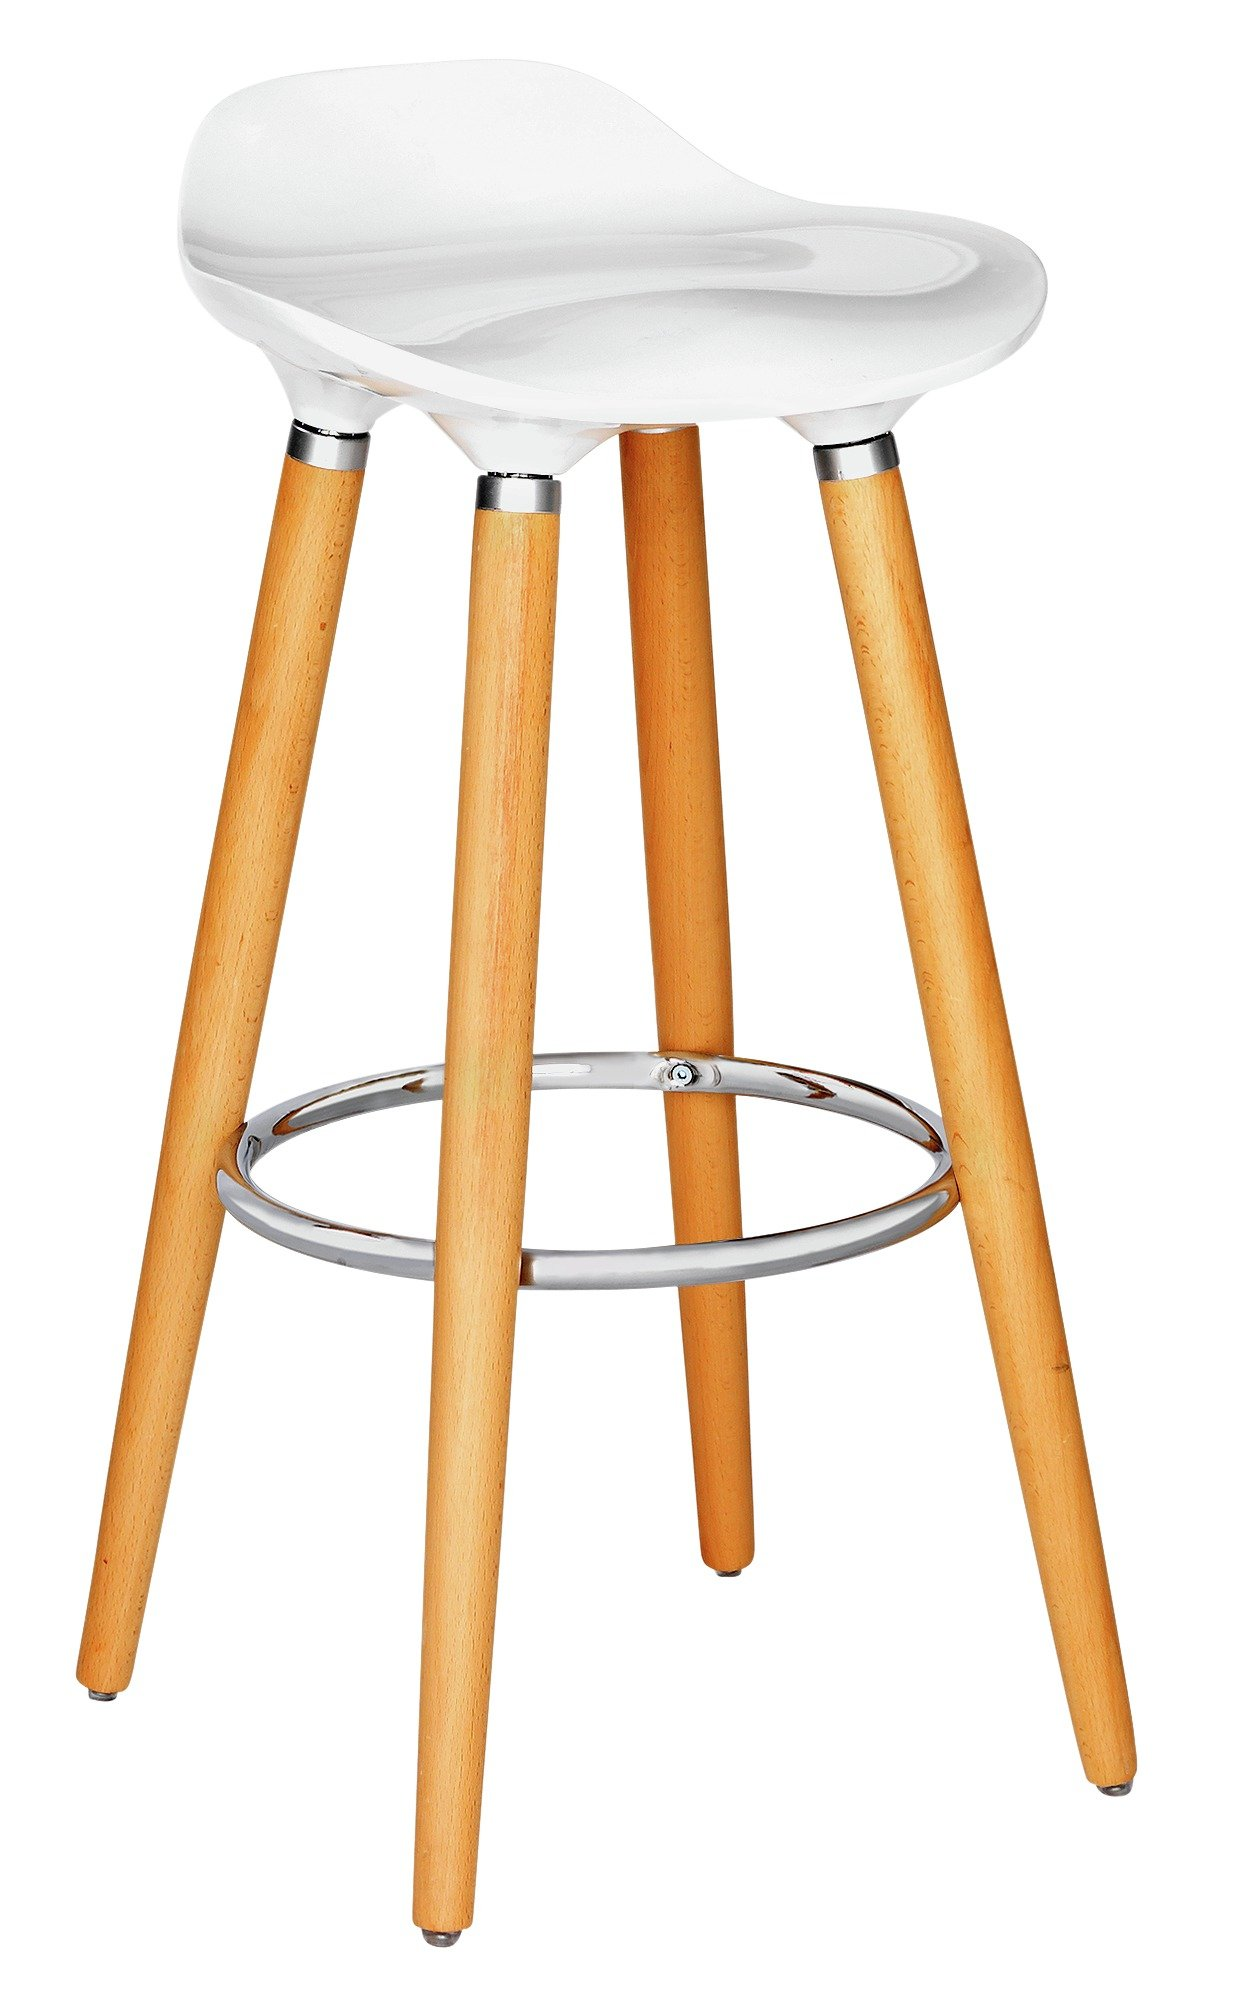 Hygena Bay Bar Stool - White